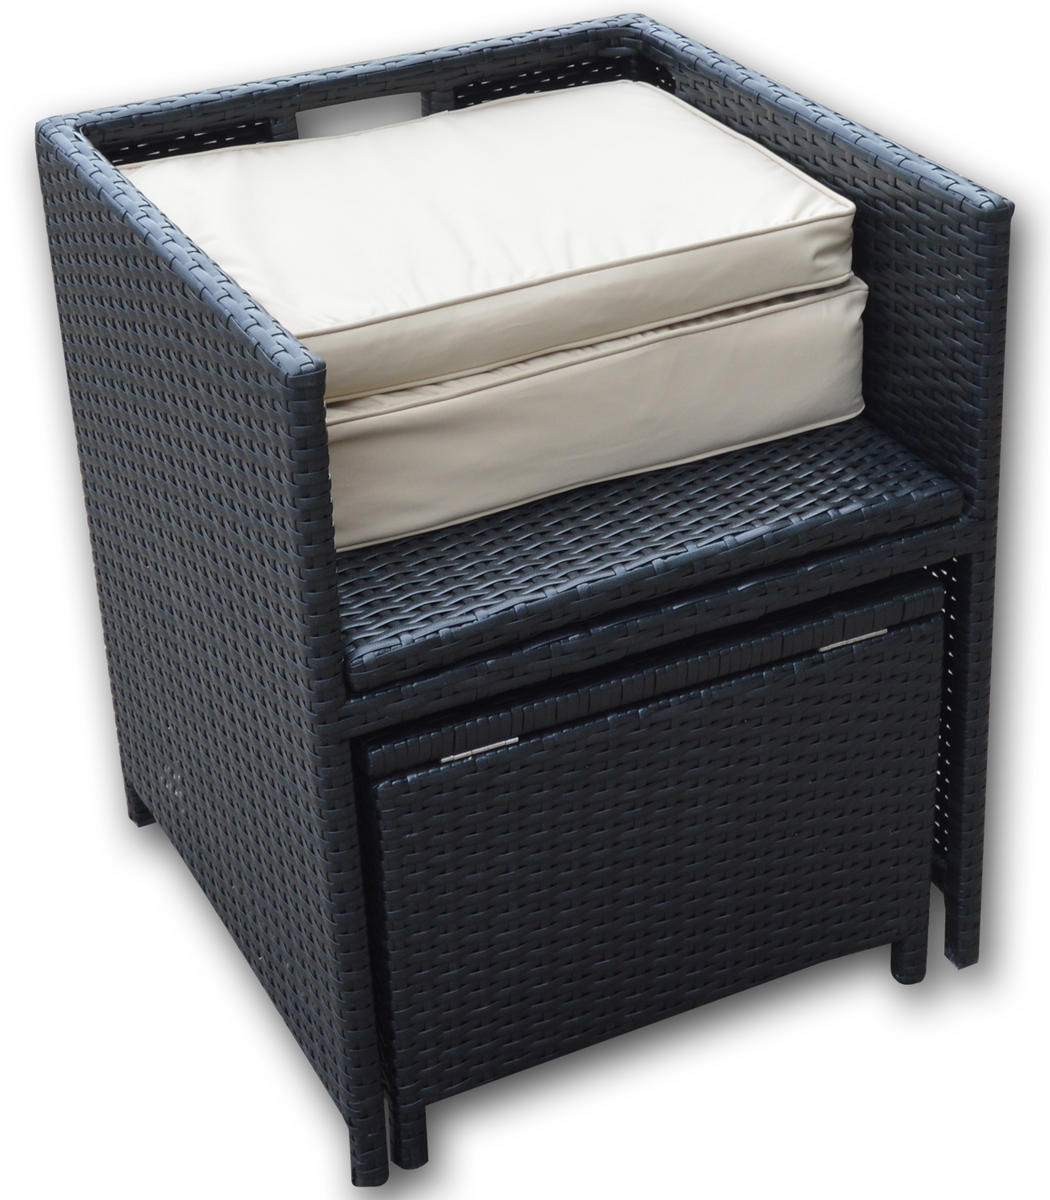 Woodside Wyoming Rattan Furniture Set Woodside